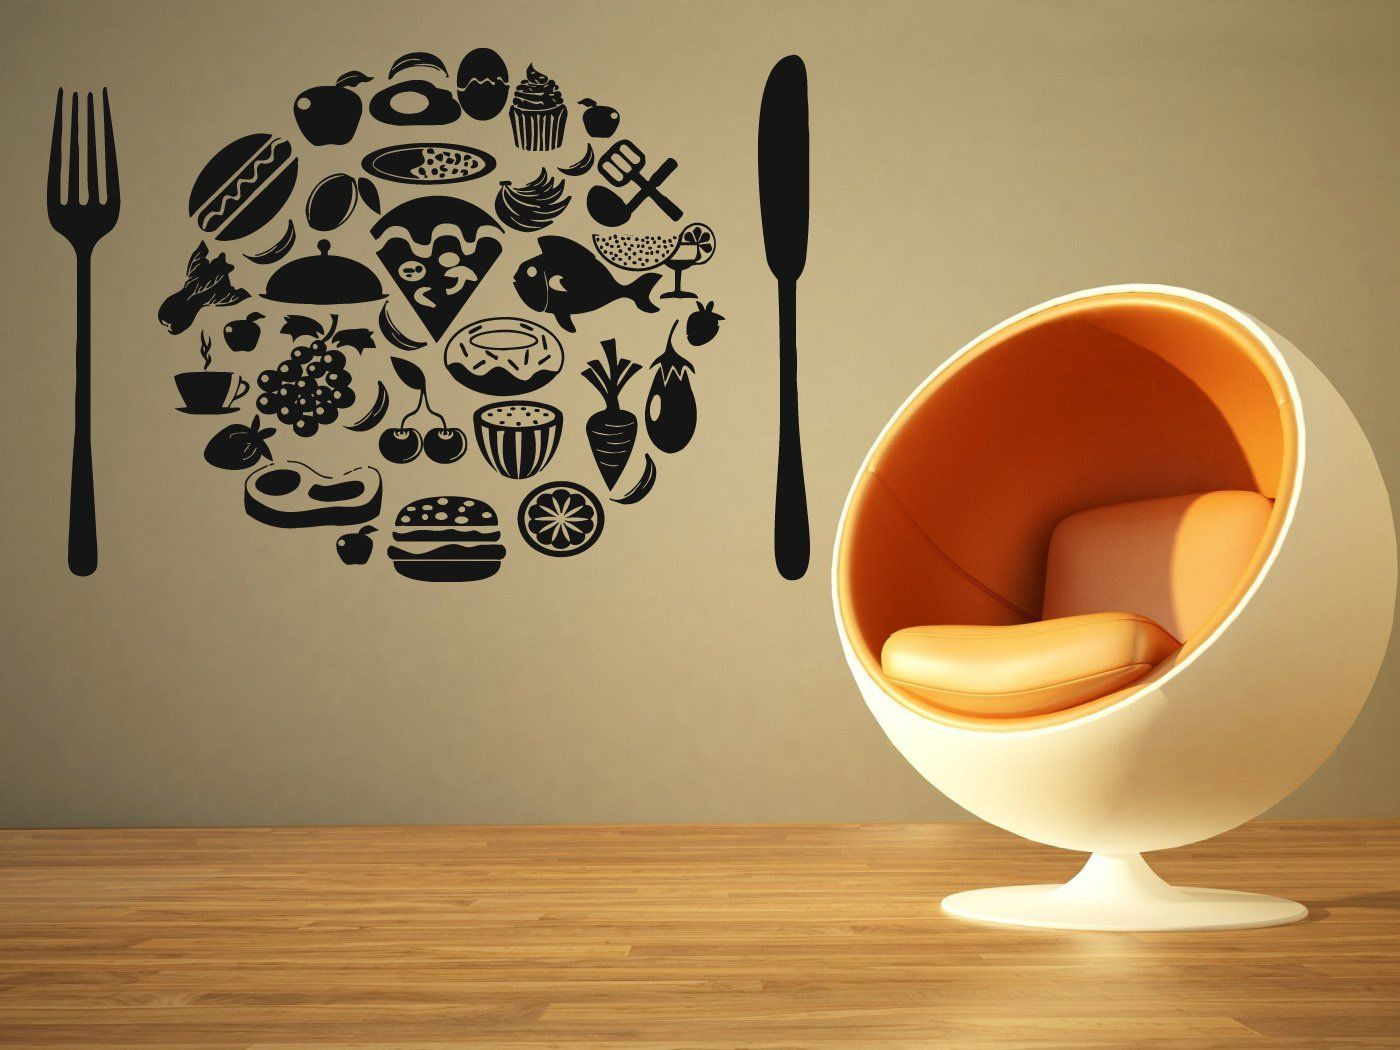 Wall Room Decor Art Vinyl Sticker Mural Decal Restaurant Food Sign ...